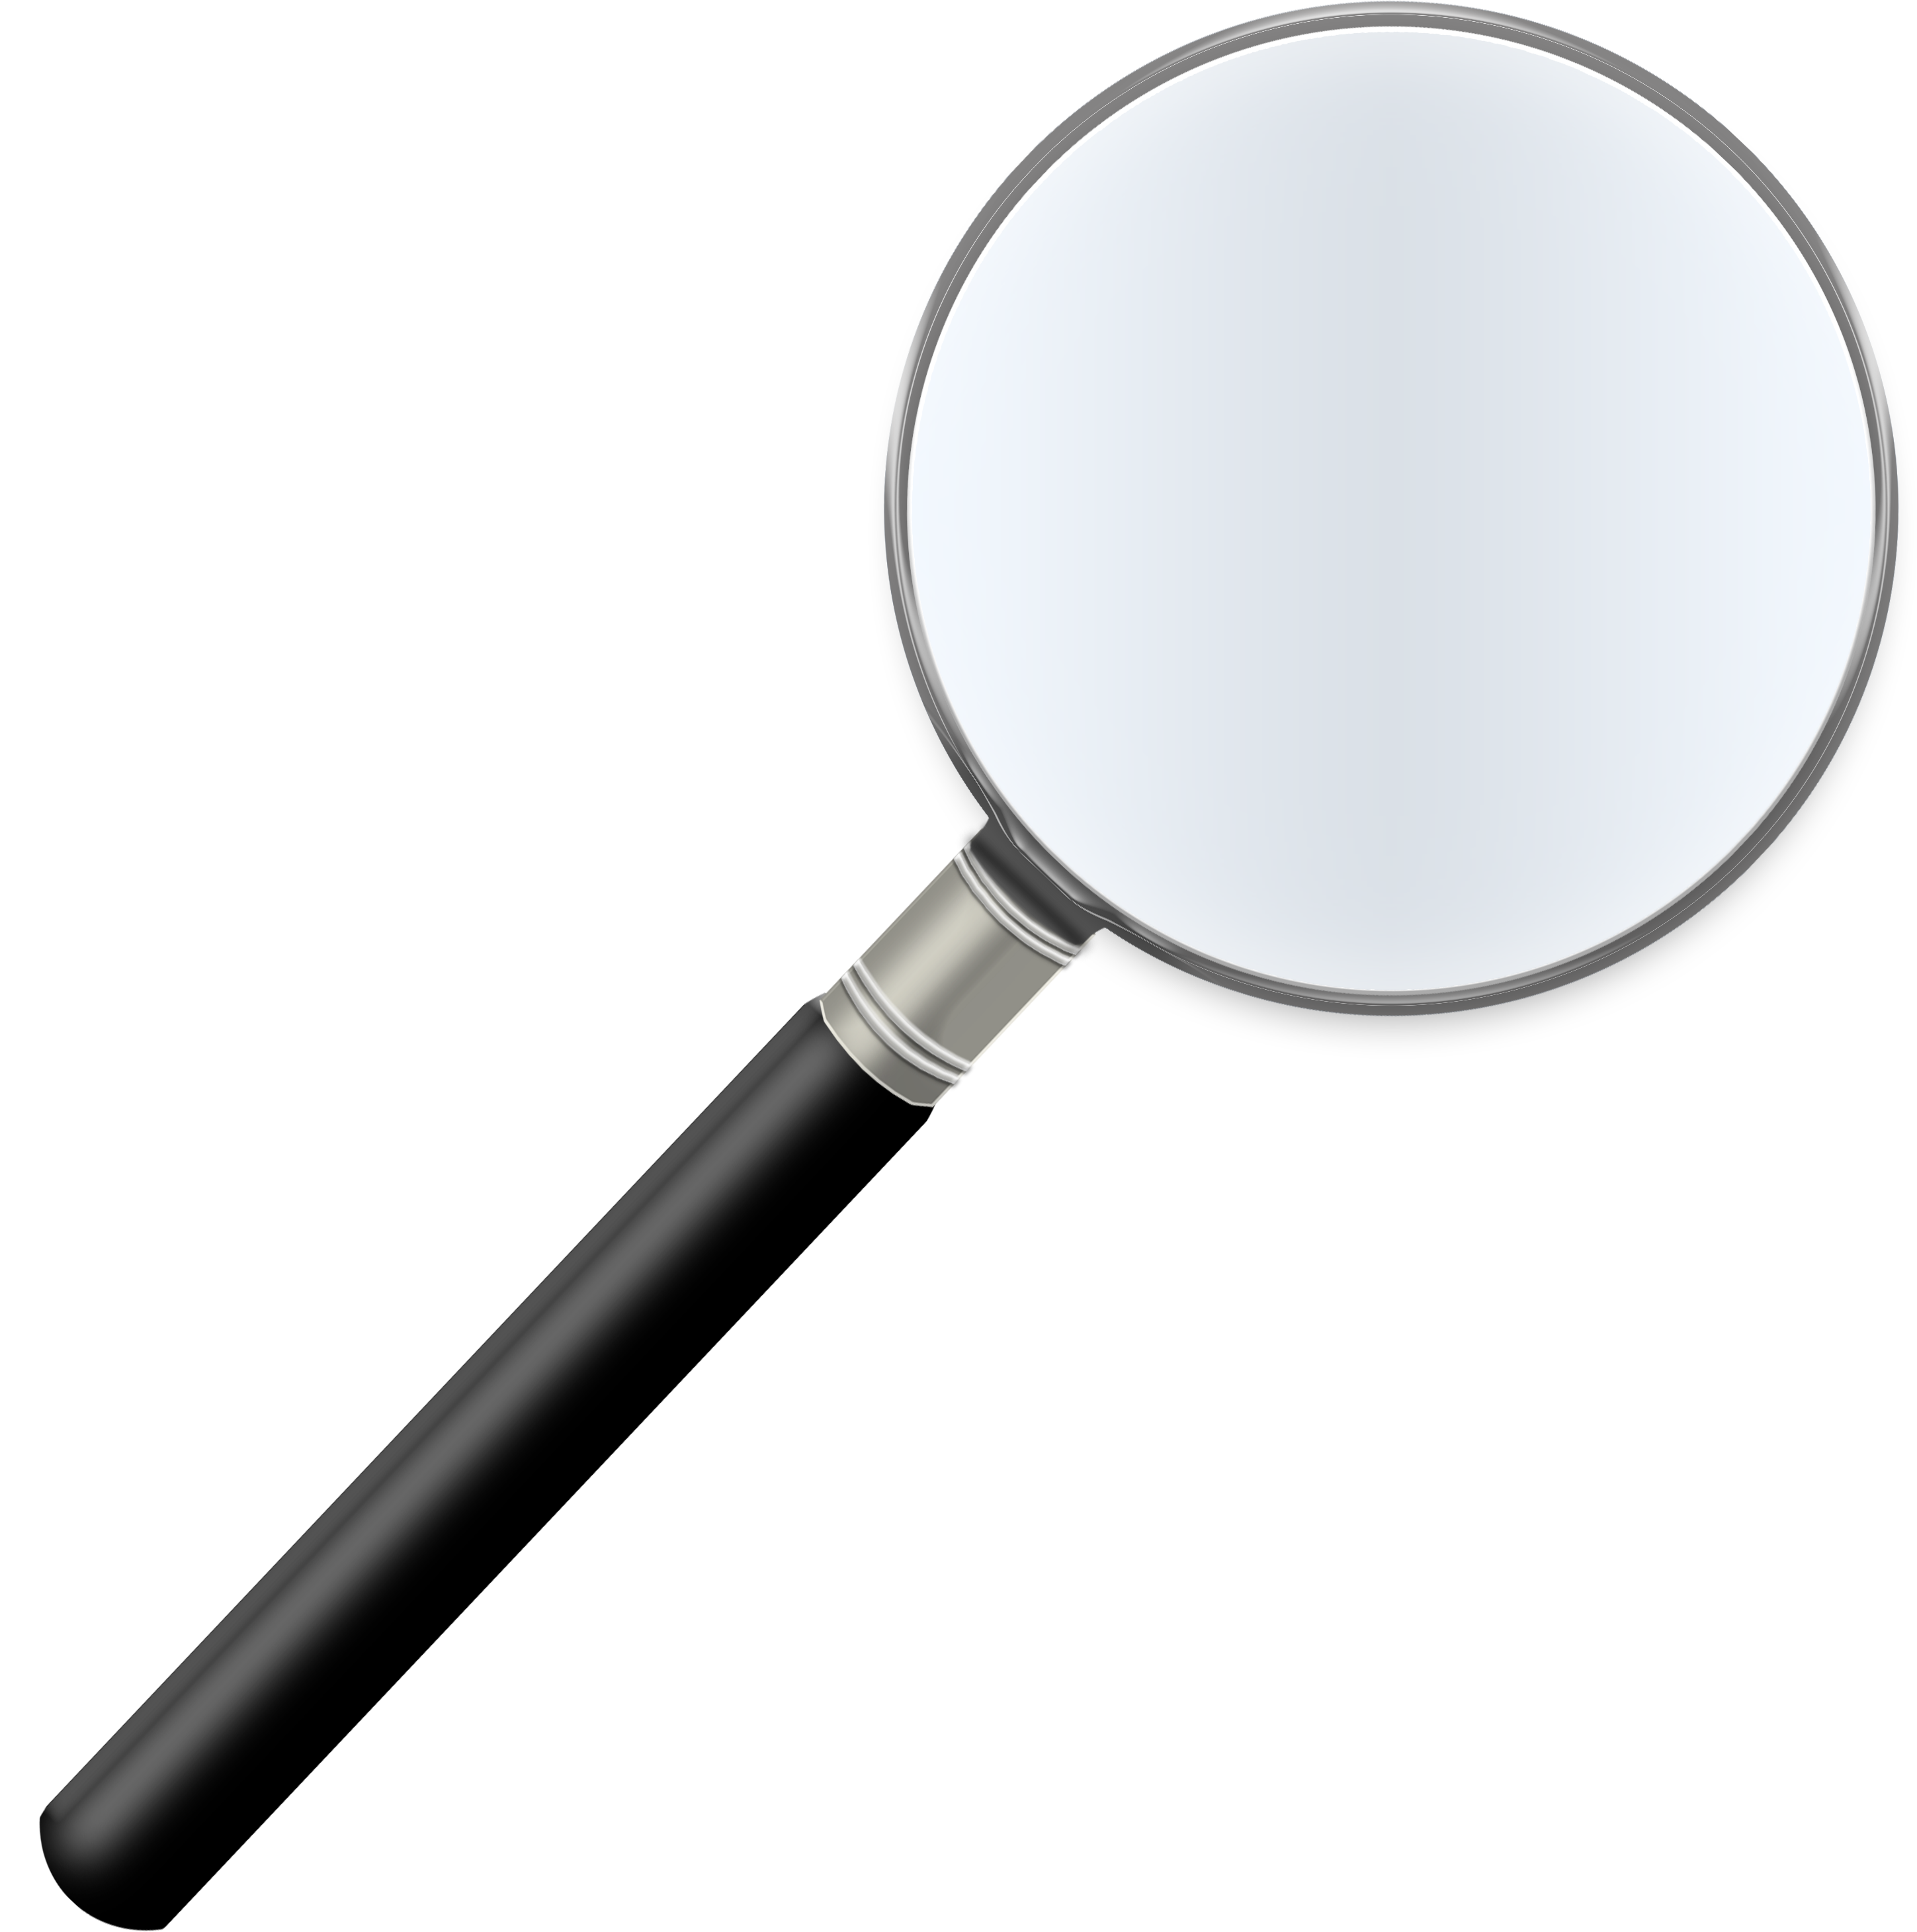 Loupe Png Image - Loupe, Transparent background PNG HD thumbnail